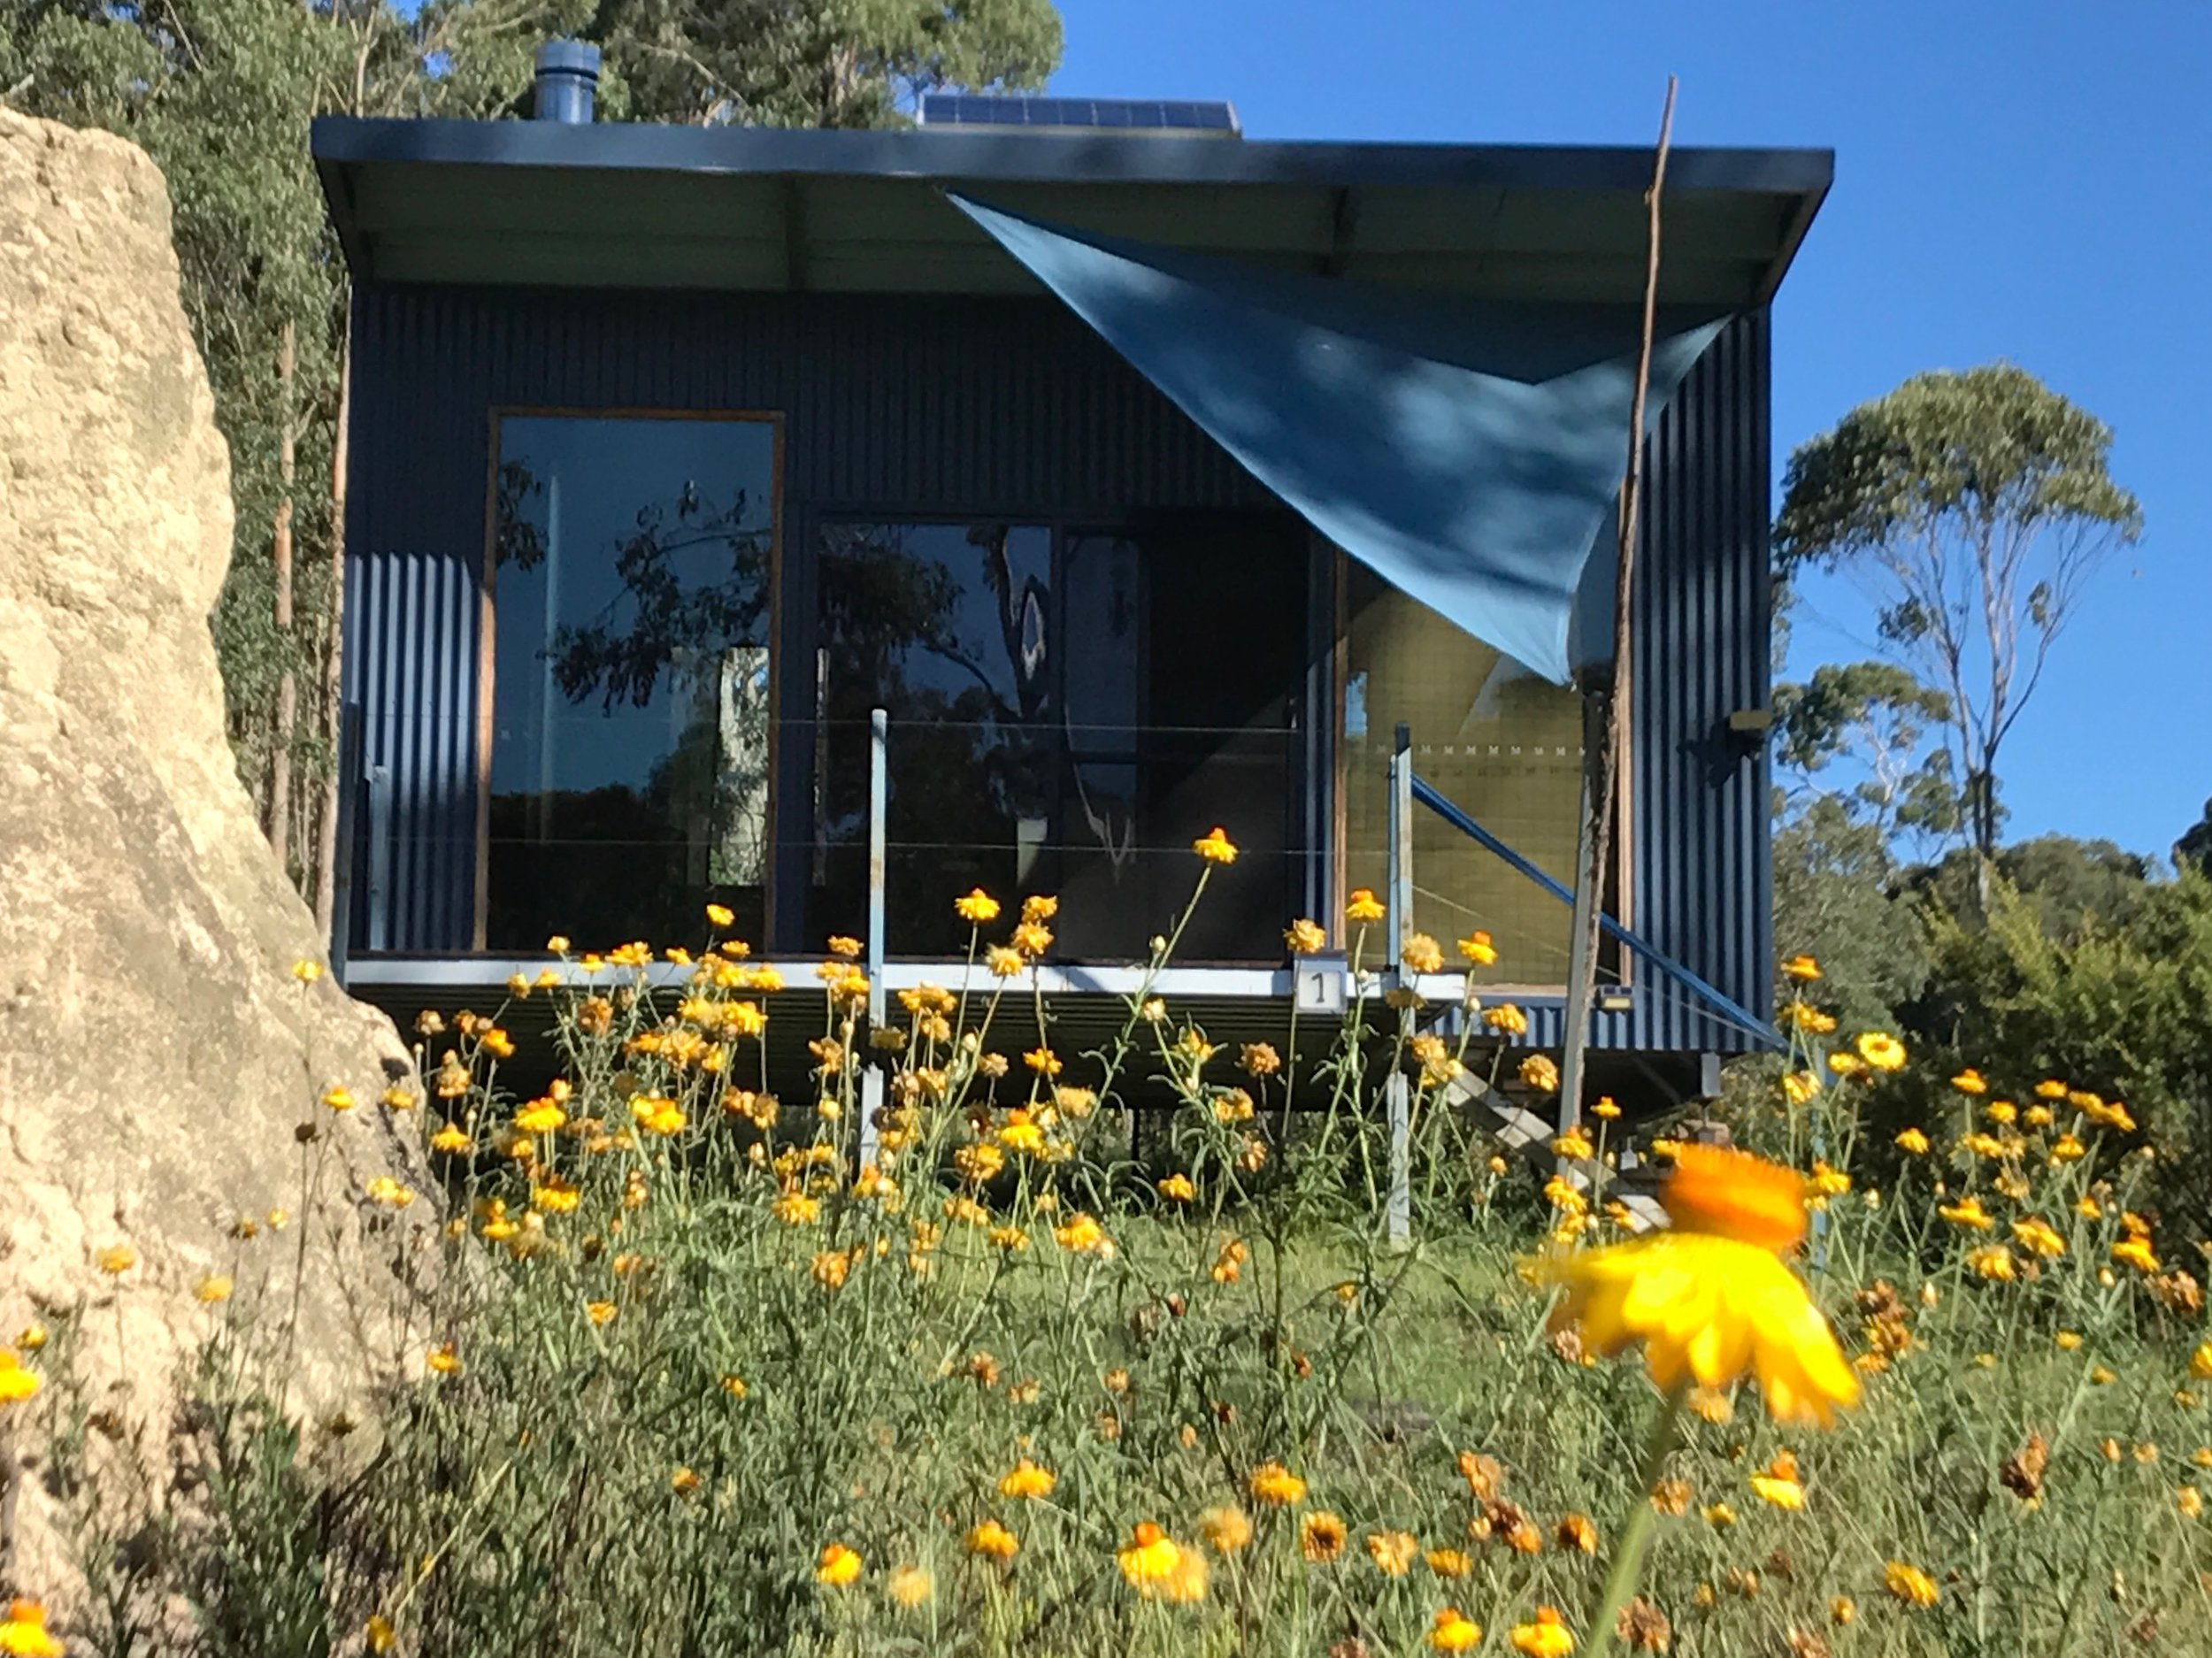 One of our guest studios: surrounded by bright yellow strawflowers in summer!